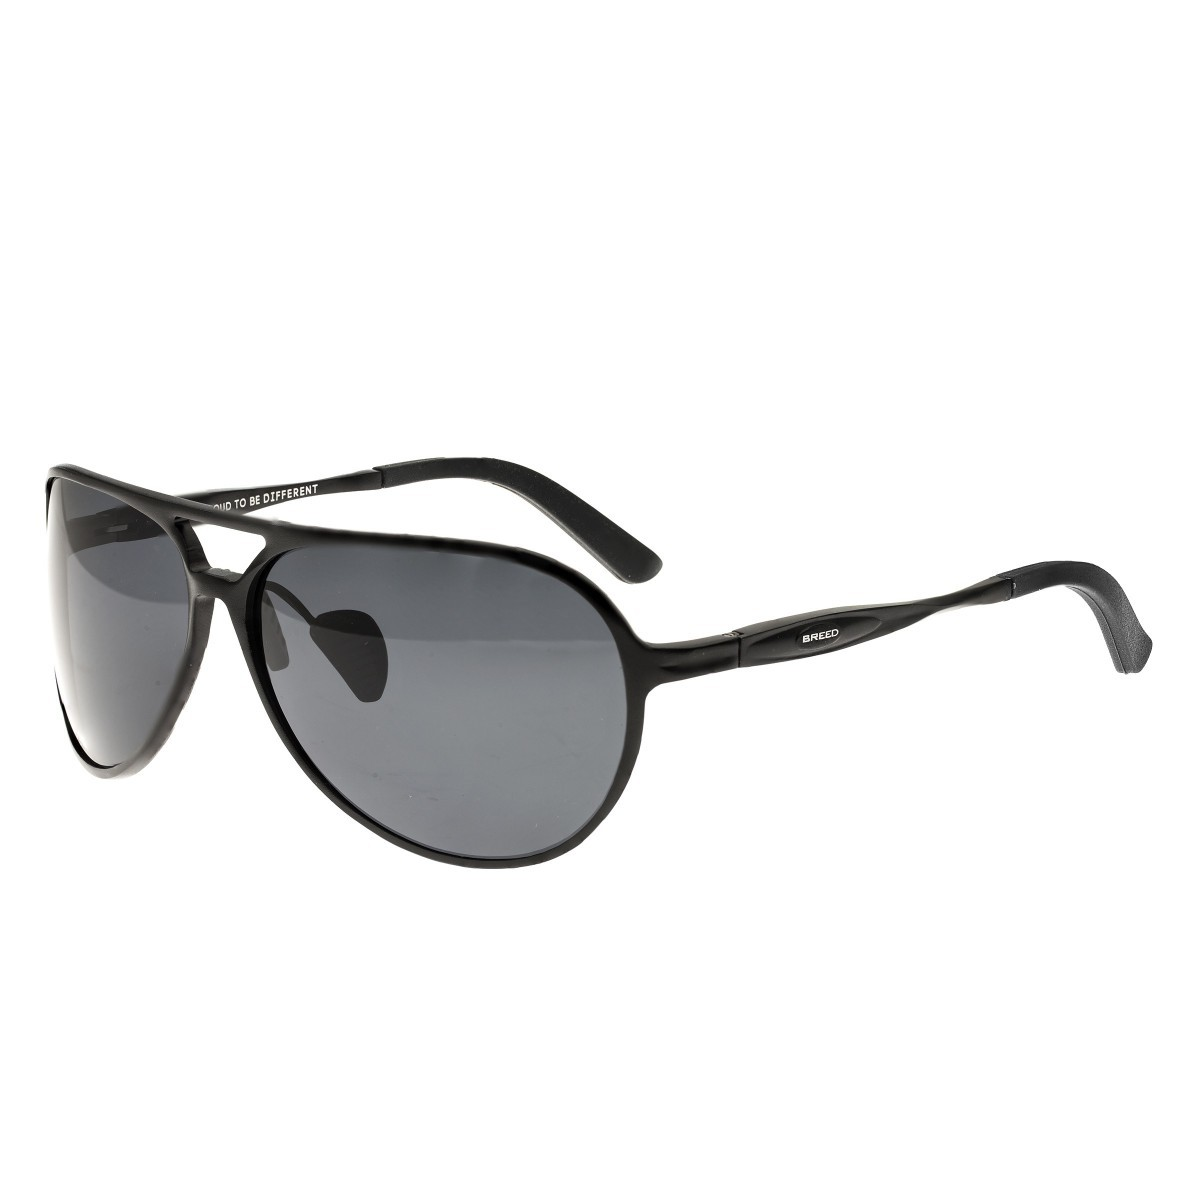 Breed Earhart Aluminium Polarized Sunglasses - Black/Black BSG011BK